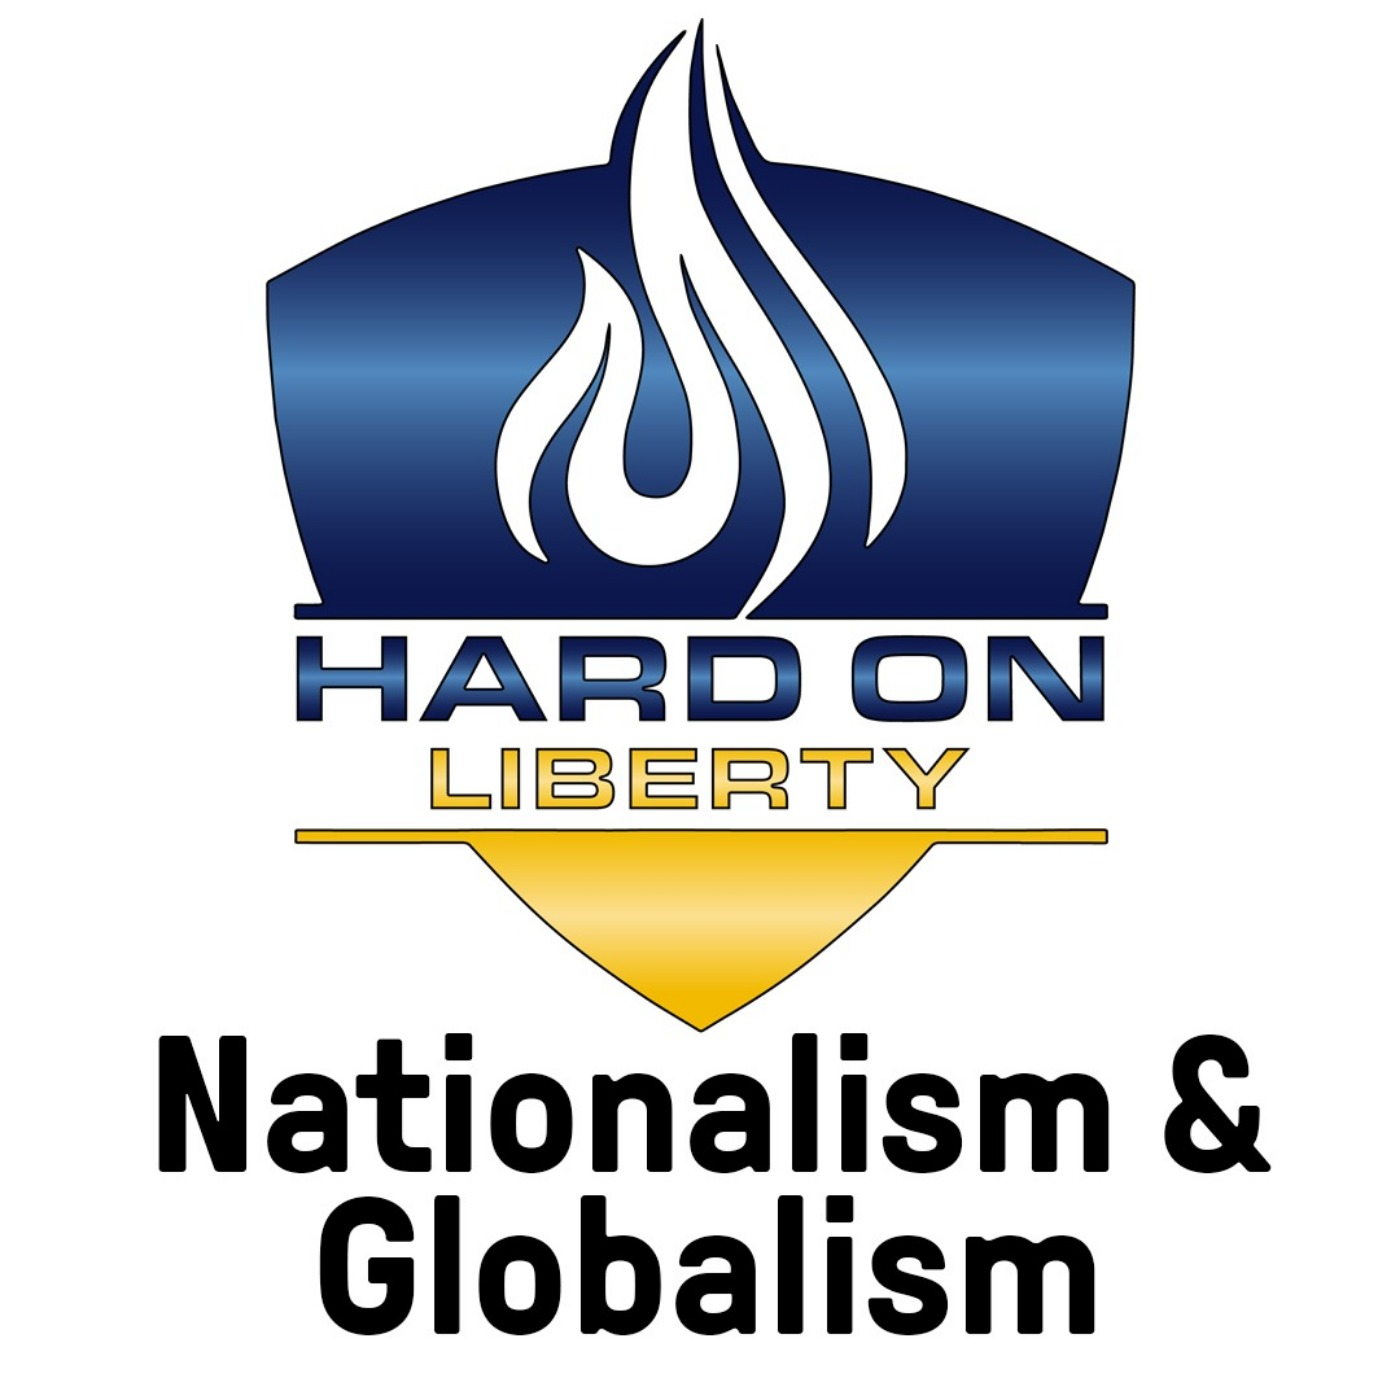 Nationalism and Globalism are Basically the Same